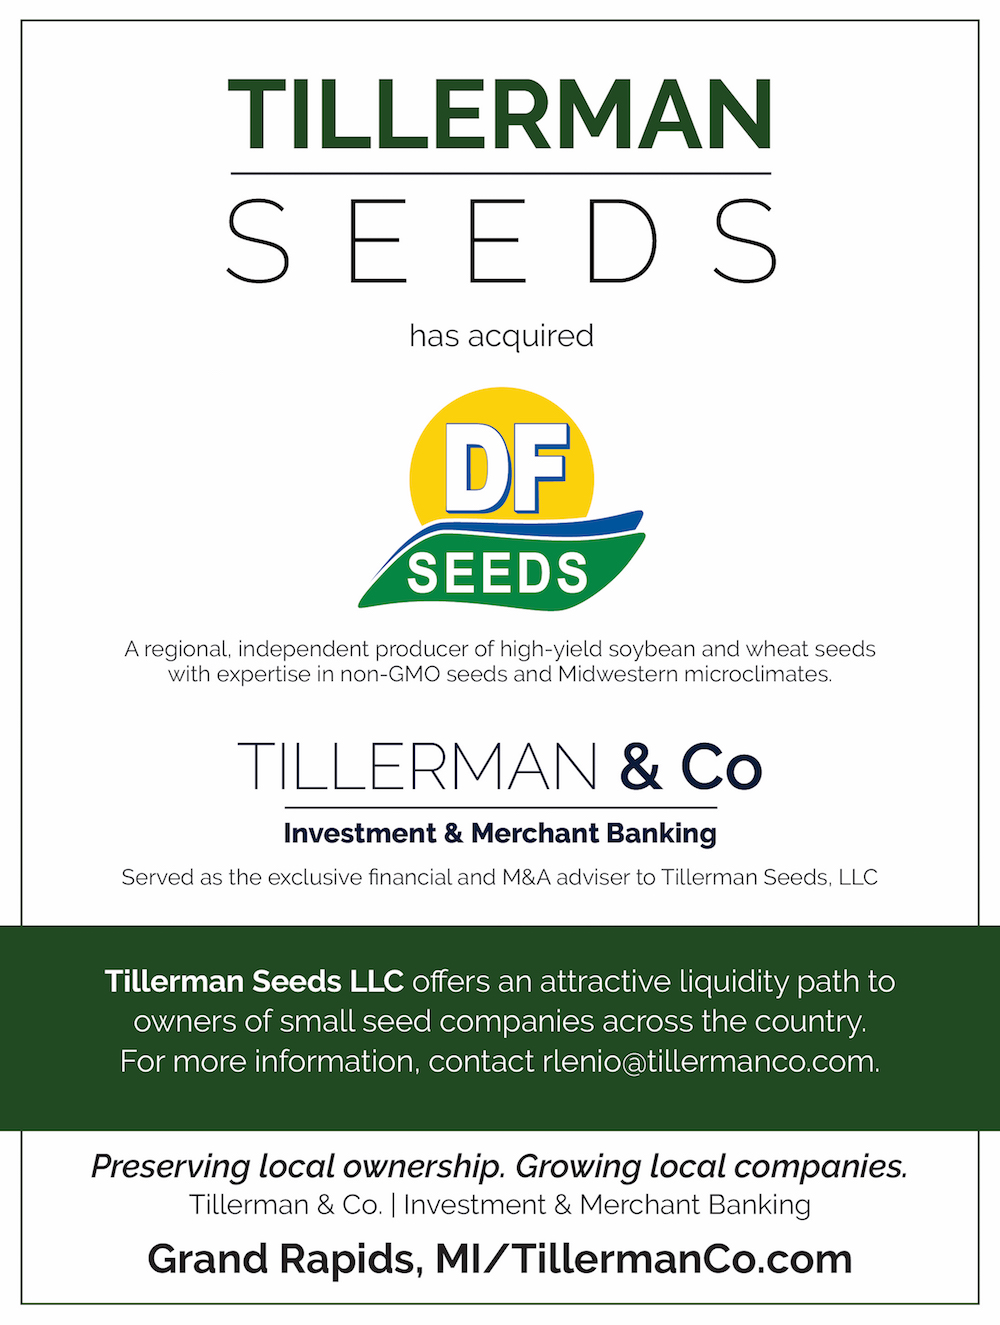 1710 TillermanSeeds Digital 4